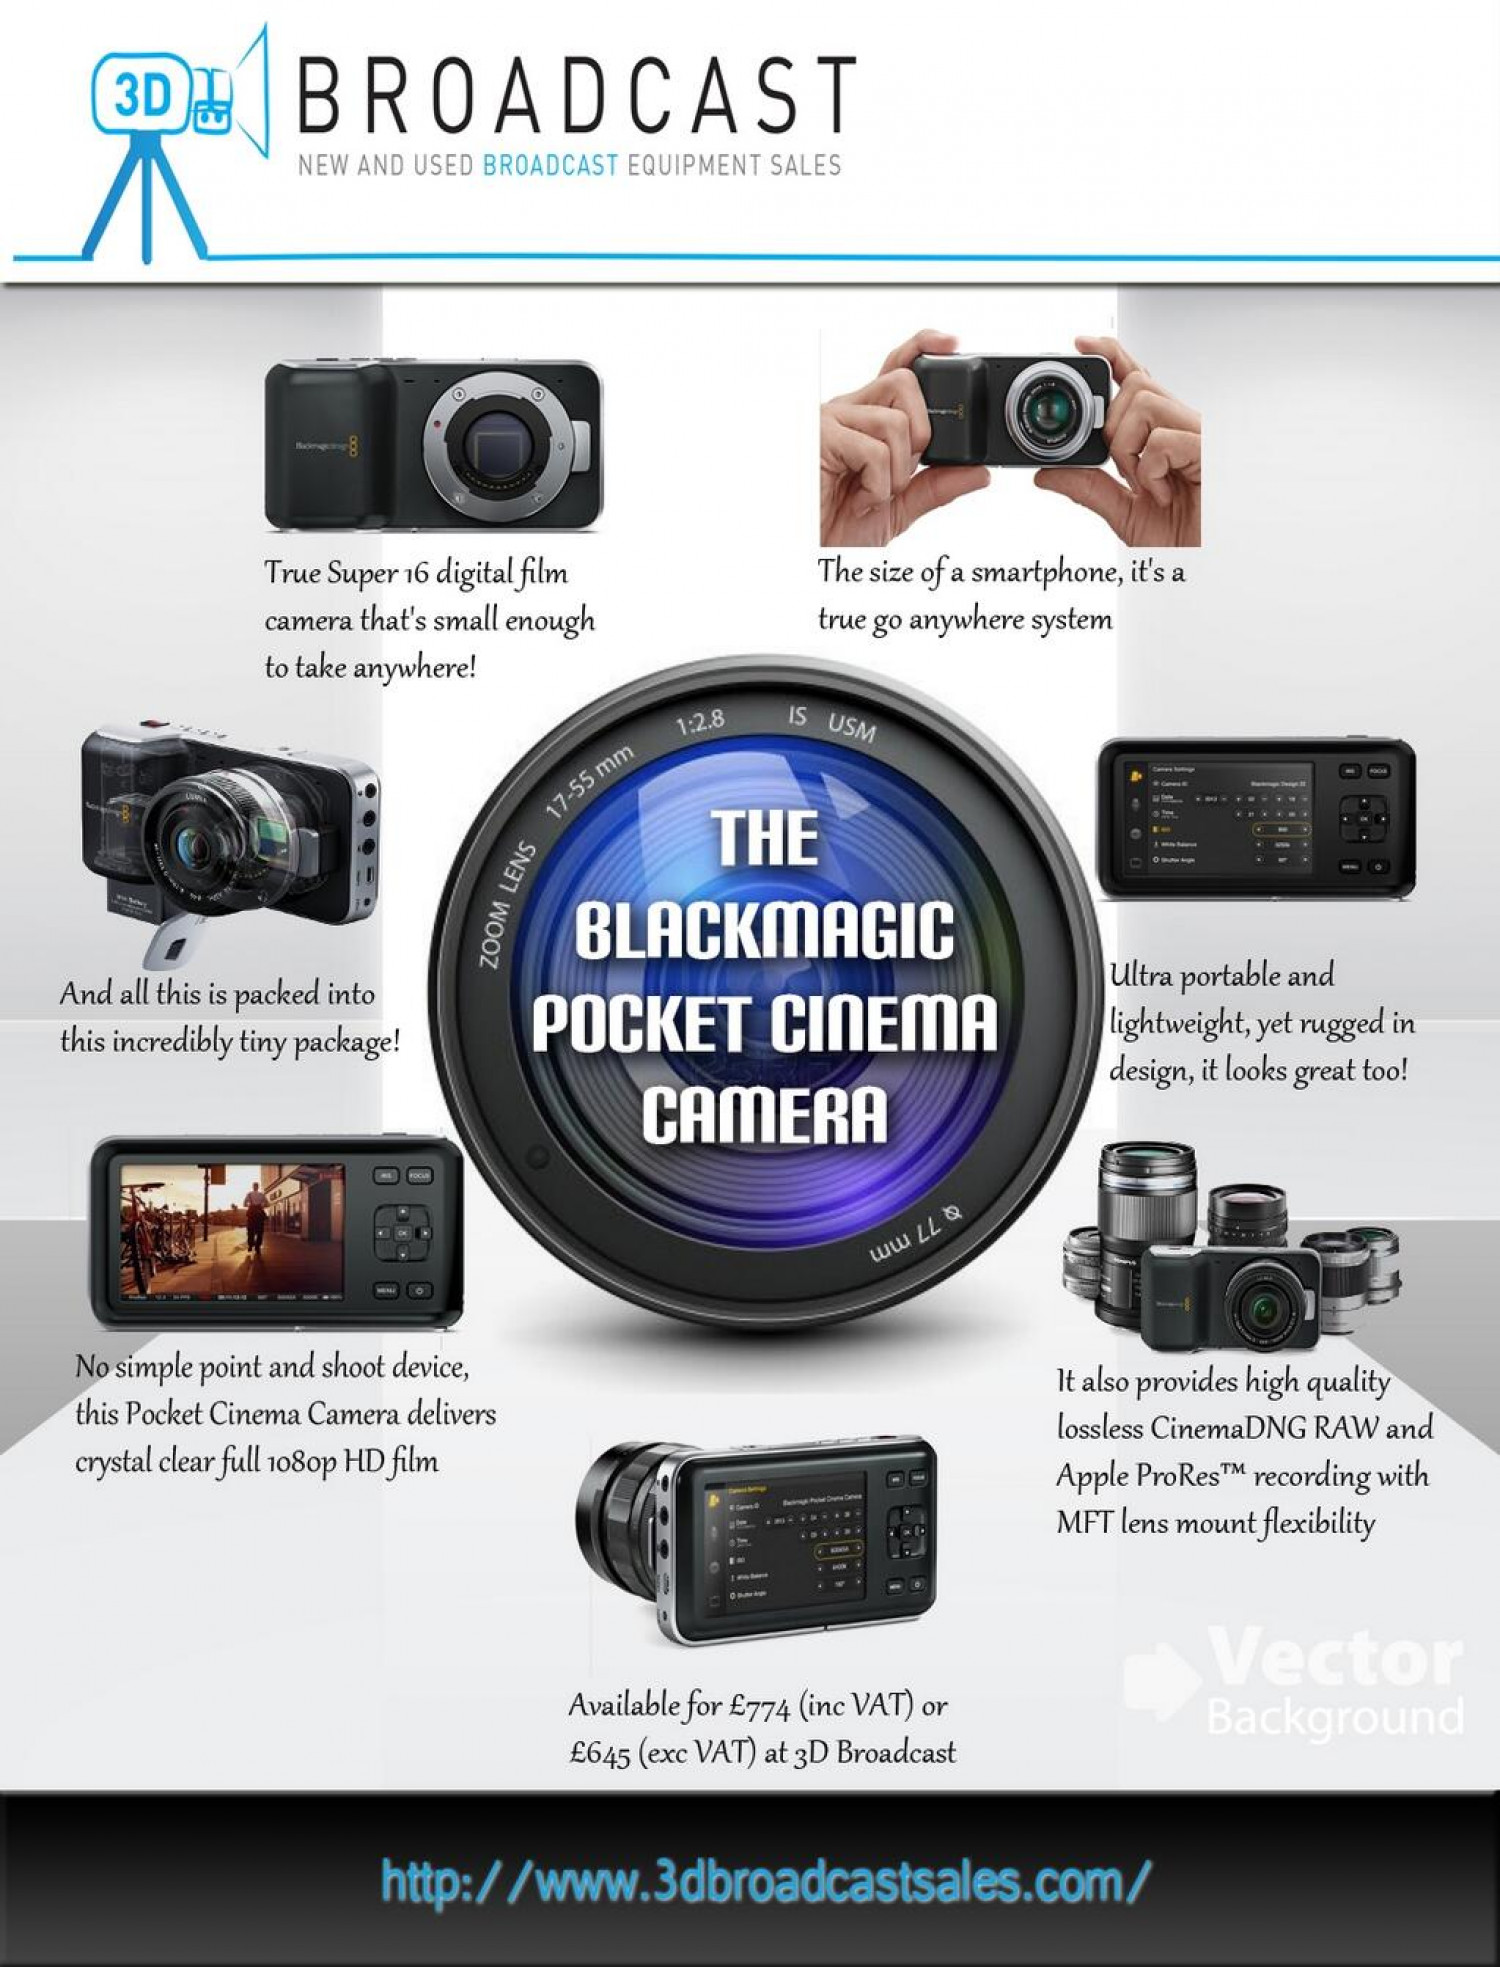 Introducing The Blackmagic Pocket Cinema Camera Infographic